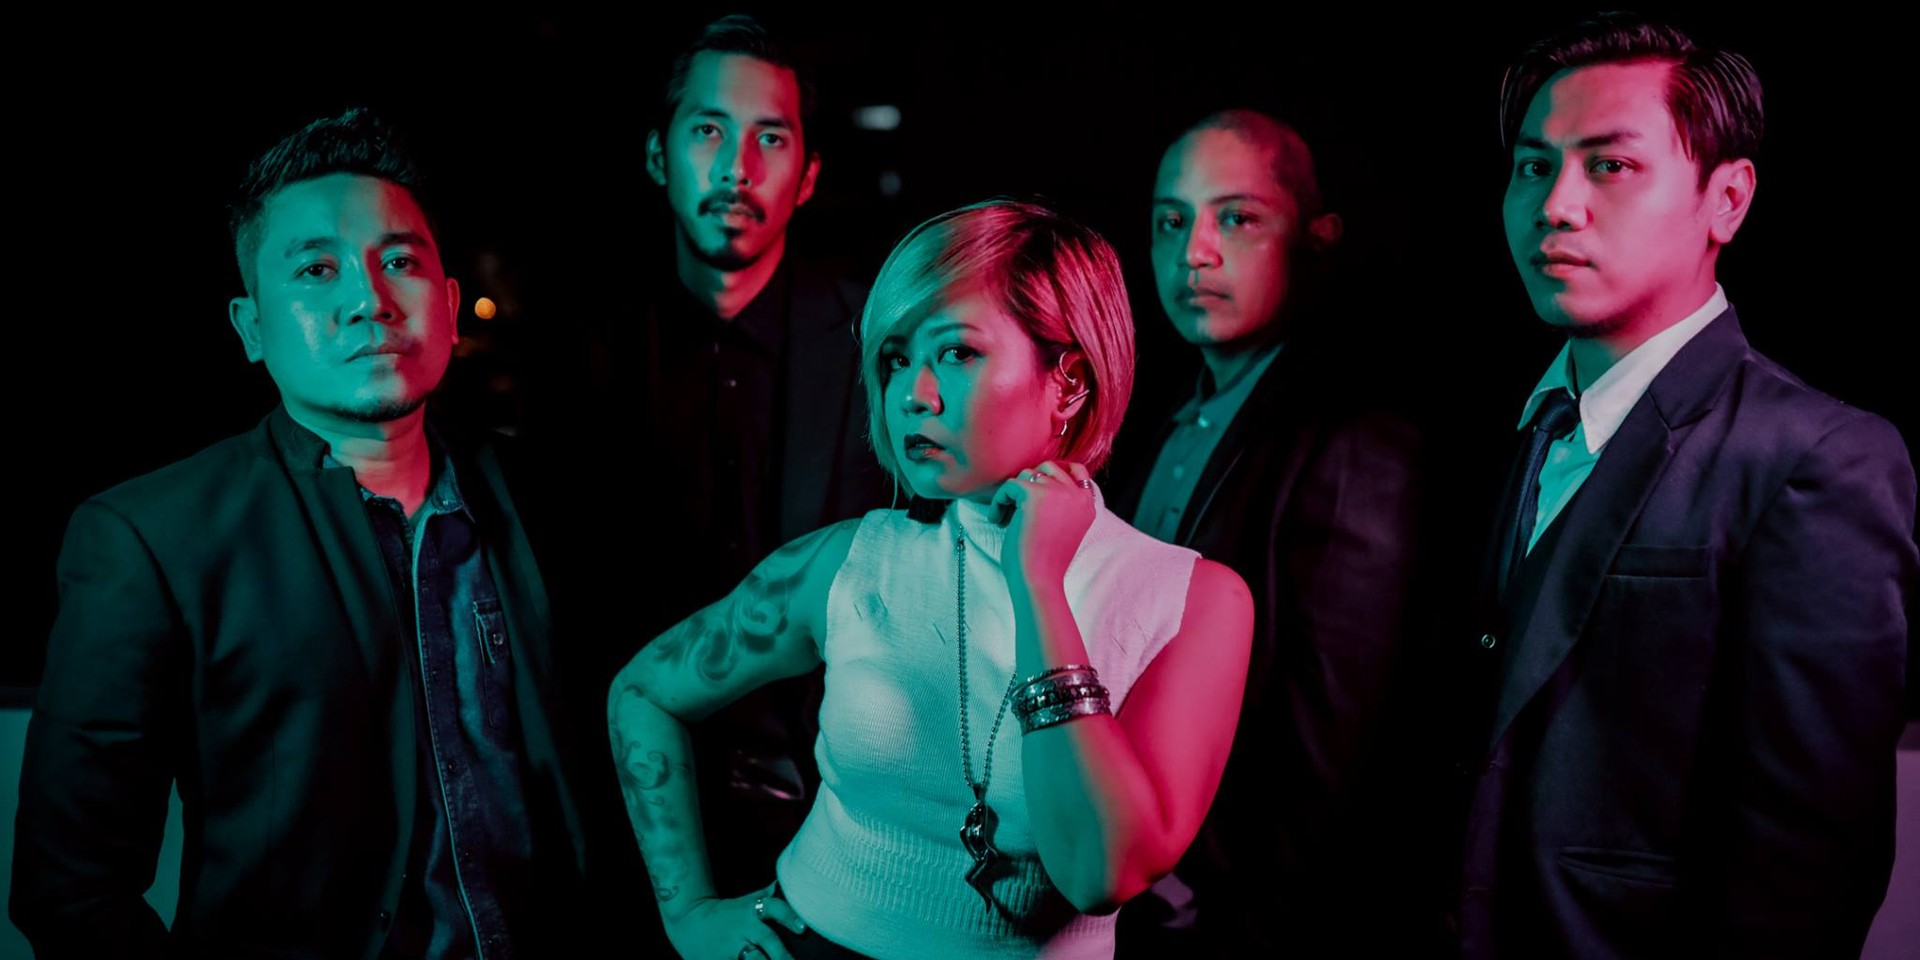 Talata to debut new music video 'Rise' this July